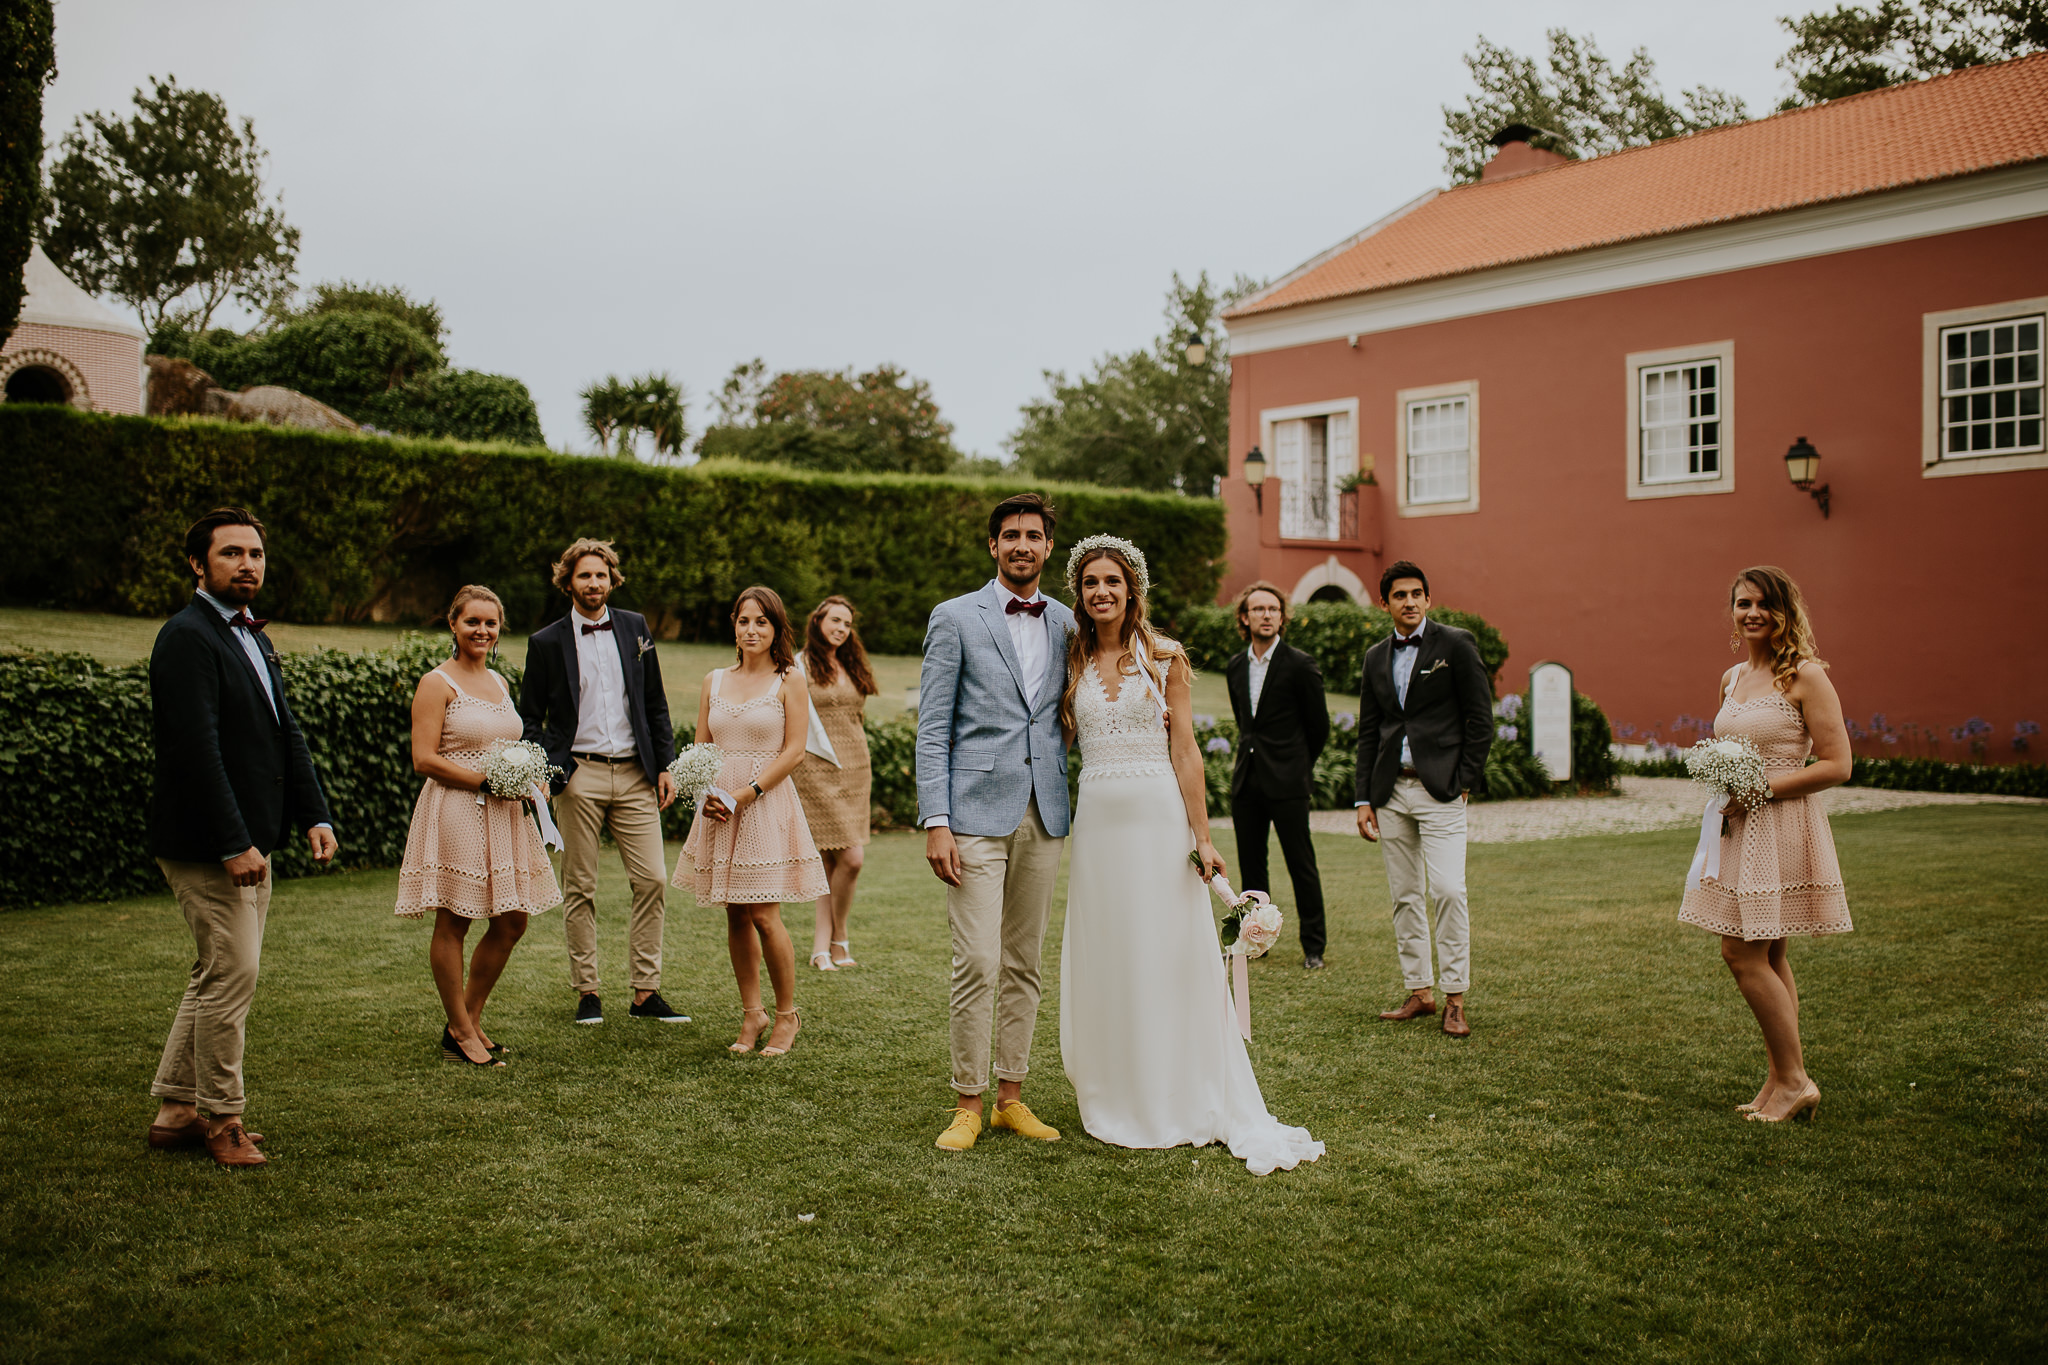 romina_thomas_destination_wedding_photography_fotografia_de_casamento_lisbon_sintra_penha_longa_resort-60